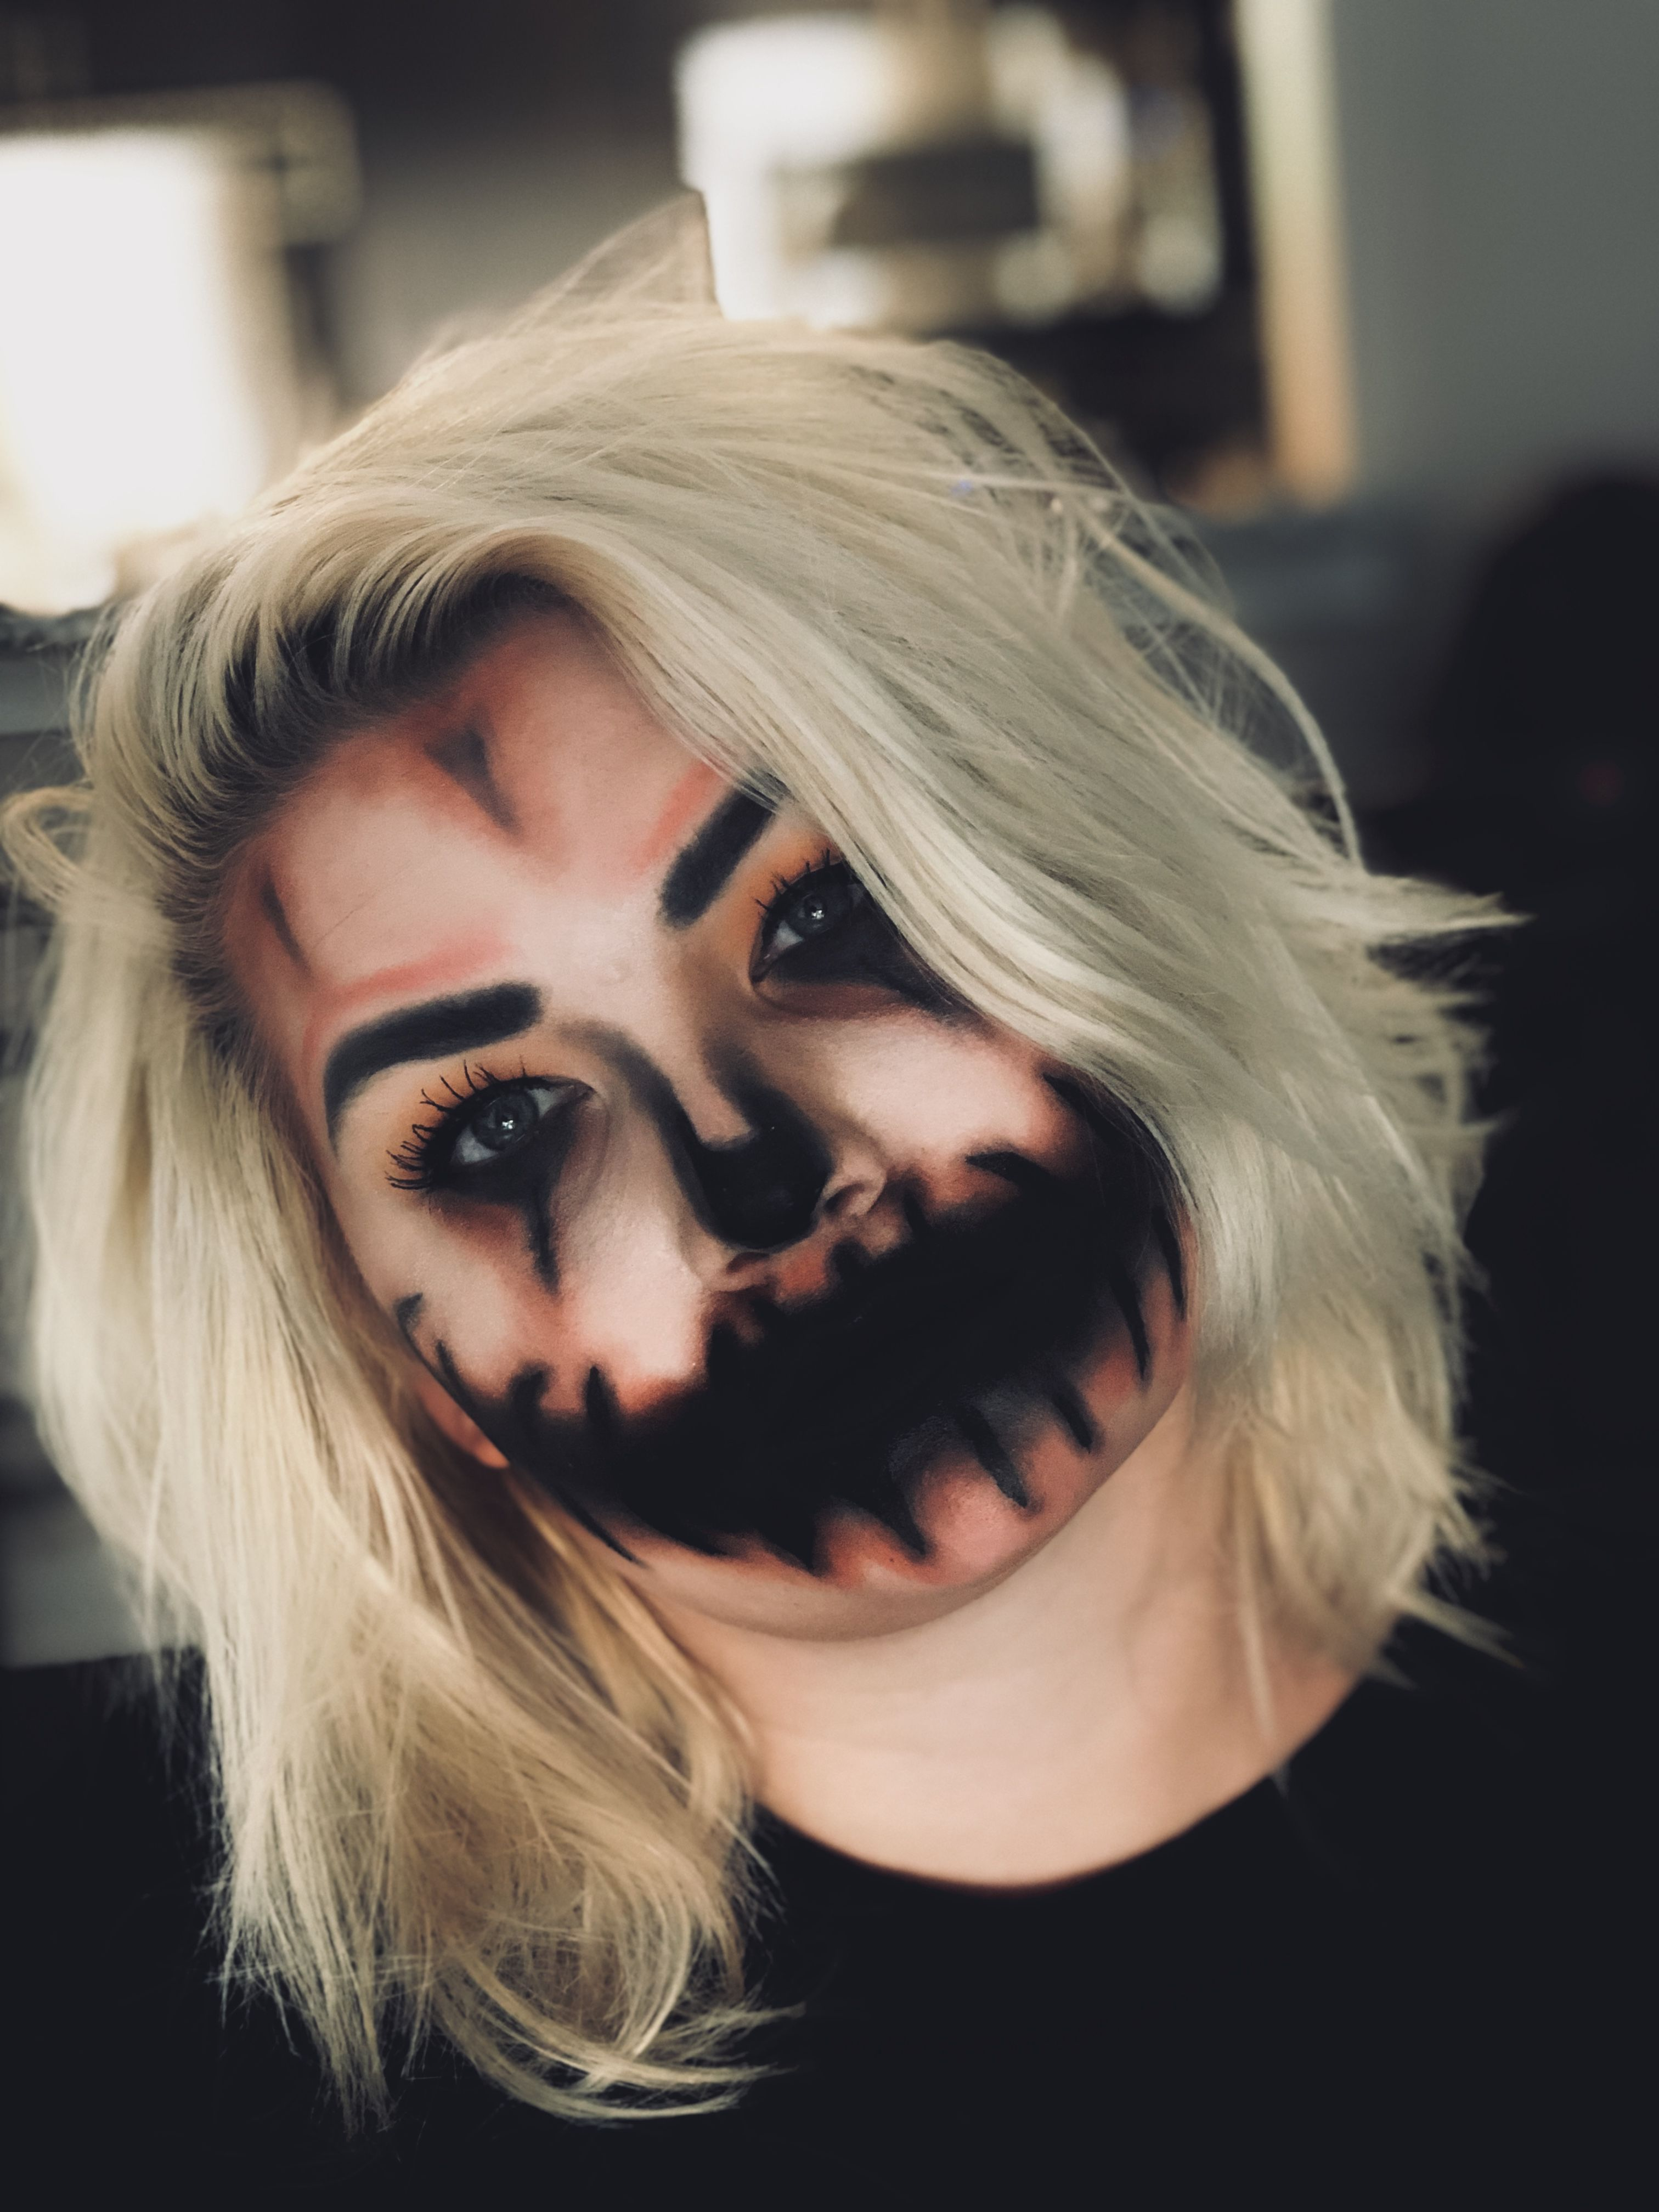 Pin by Lauren Michelle on Halloween Halloween makeup